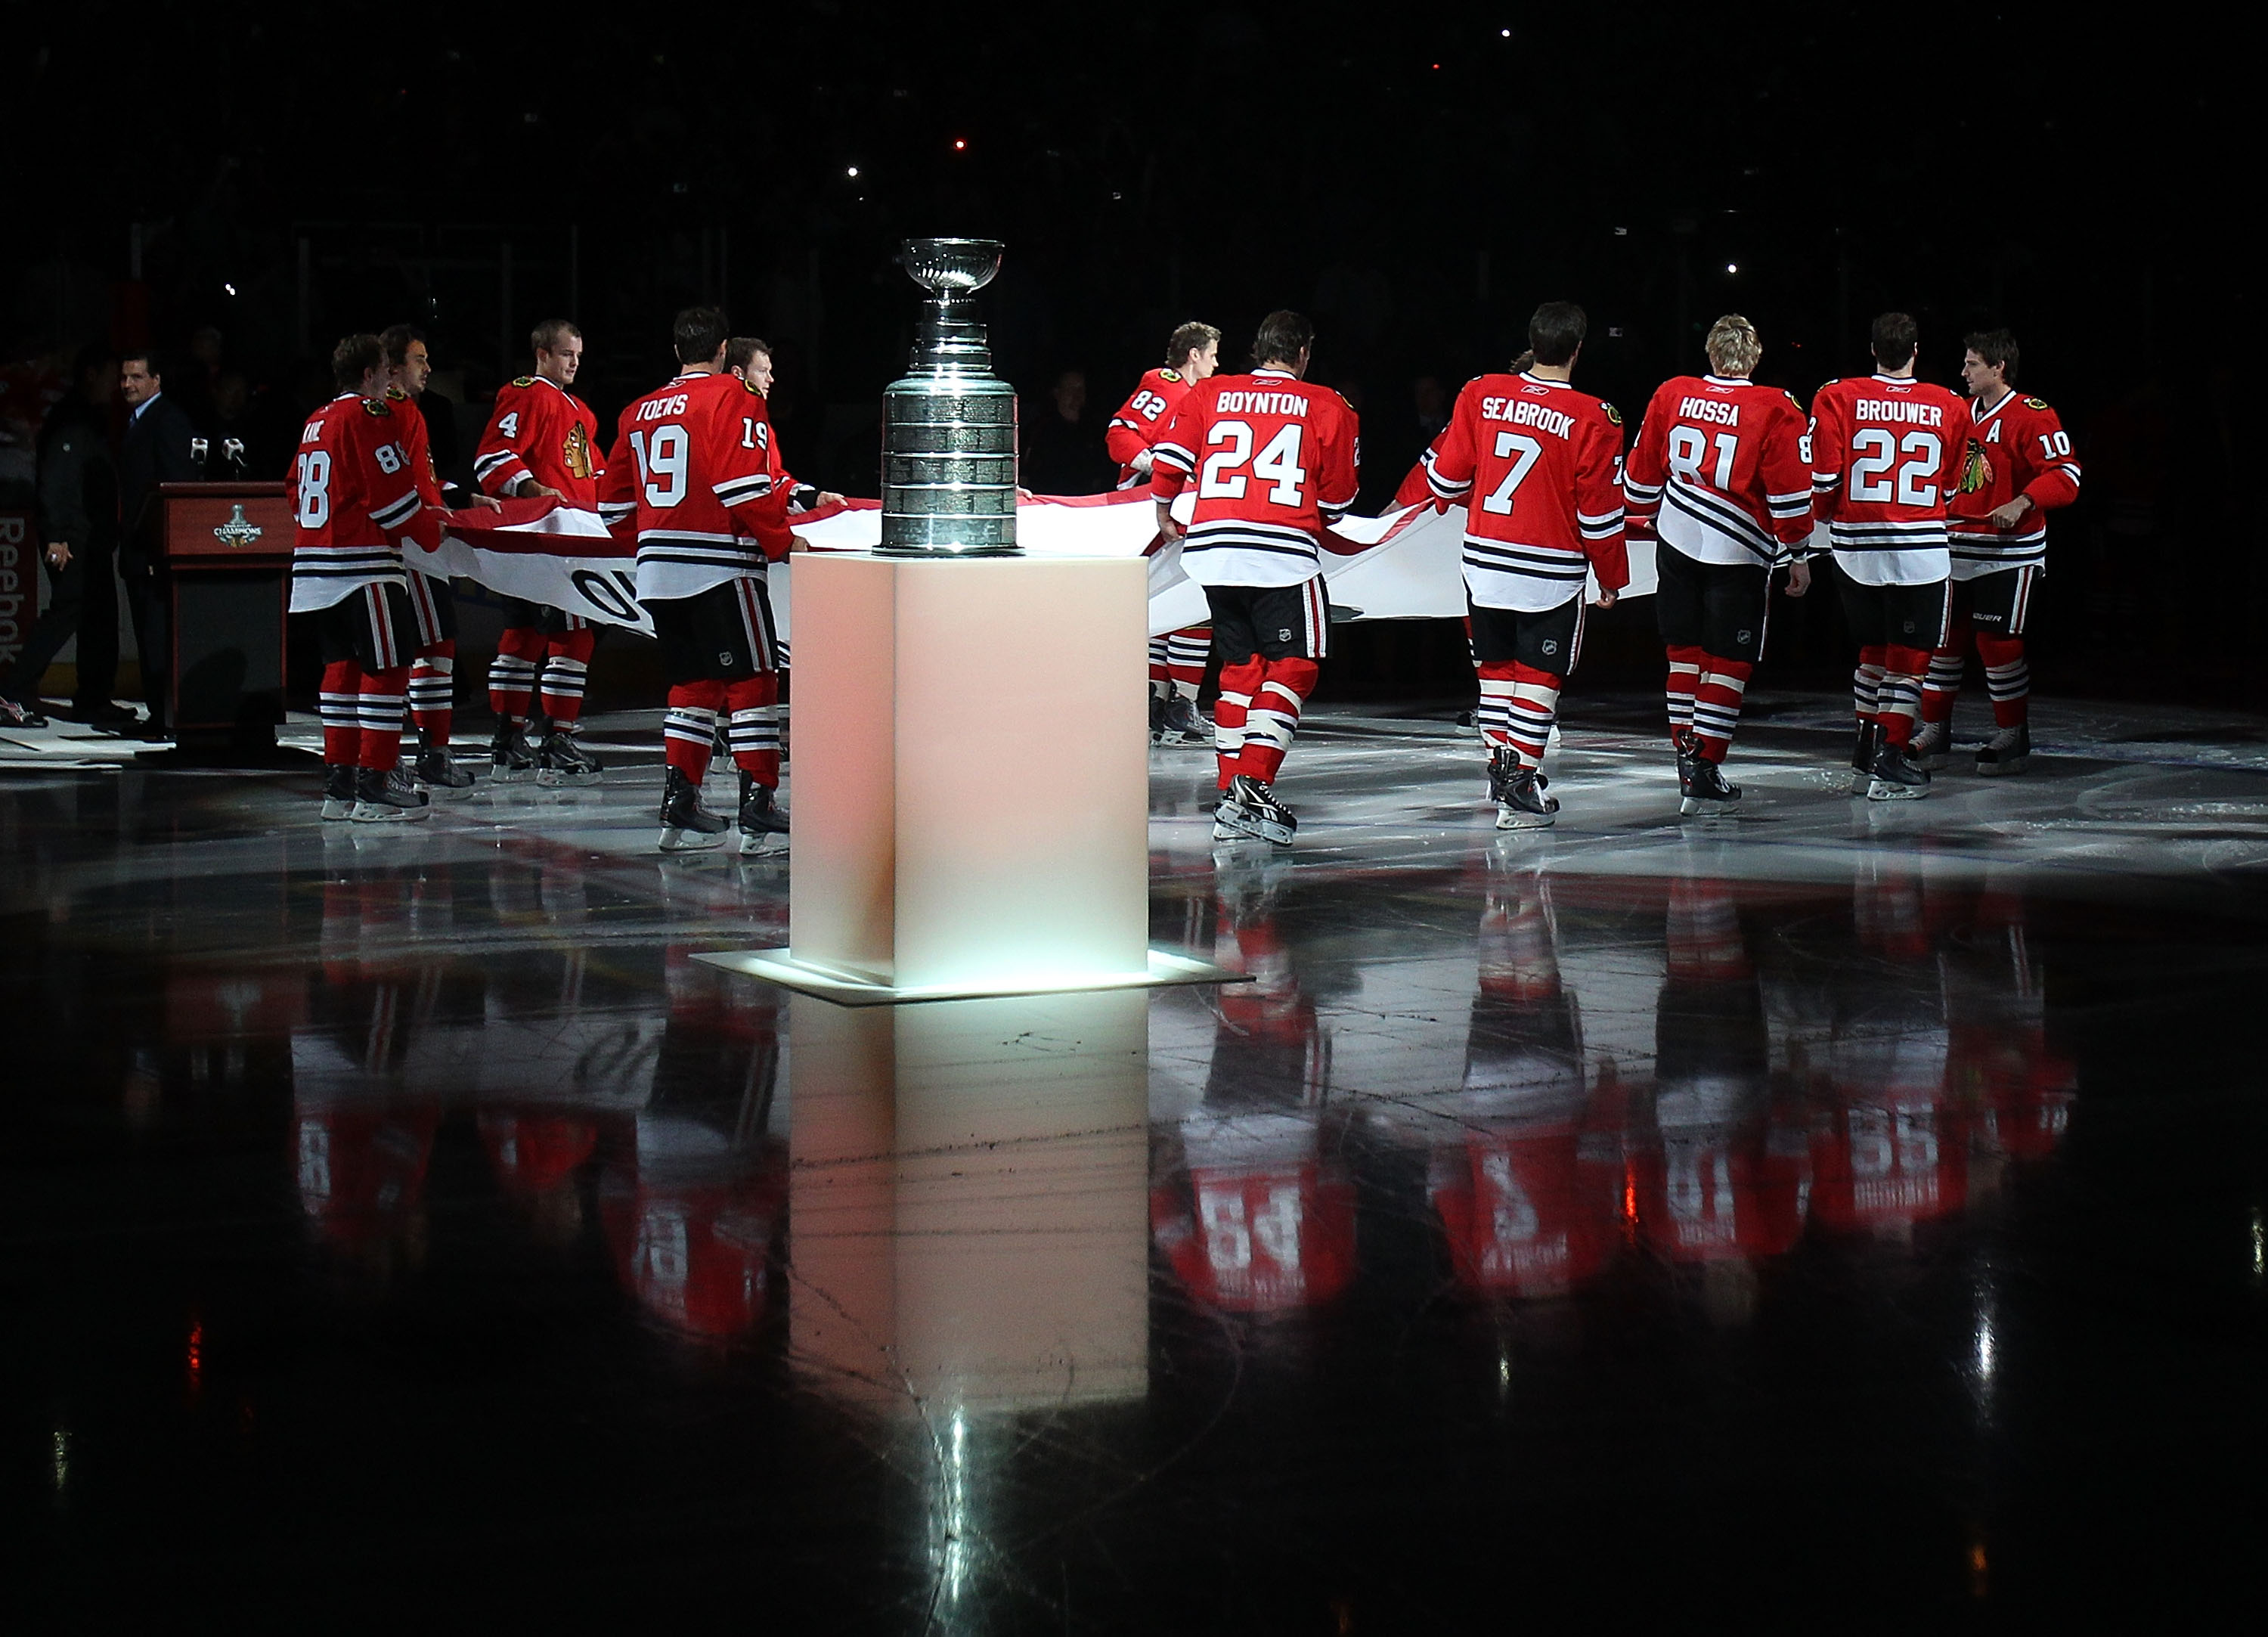 CHICAGO - OCTOBER 09: Members of the Chicago Blackhawks carry the Stanley Cup Championship banner across the ice past the Stanley Cup in a ceremony before the Blackhawks season home opening game against the Detroit Red Wings at the United Center on Octobe